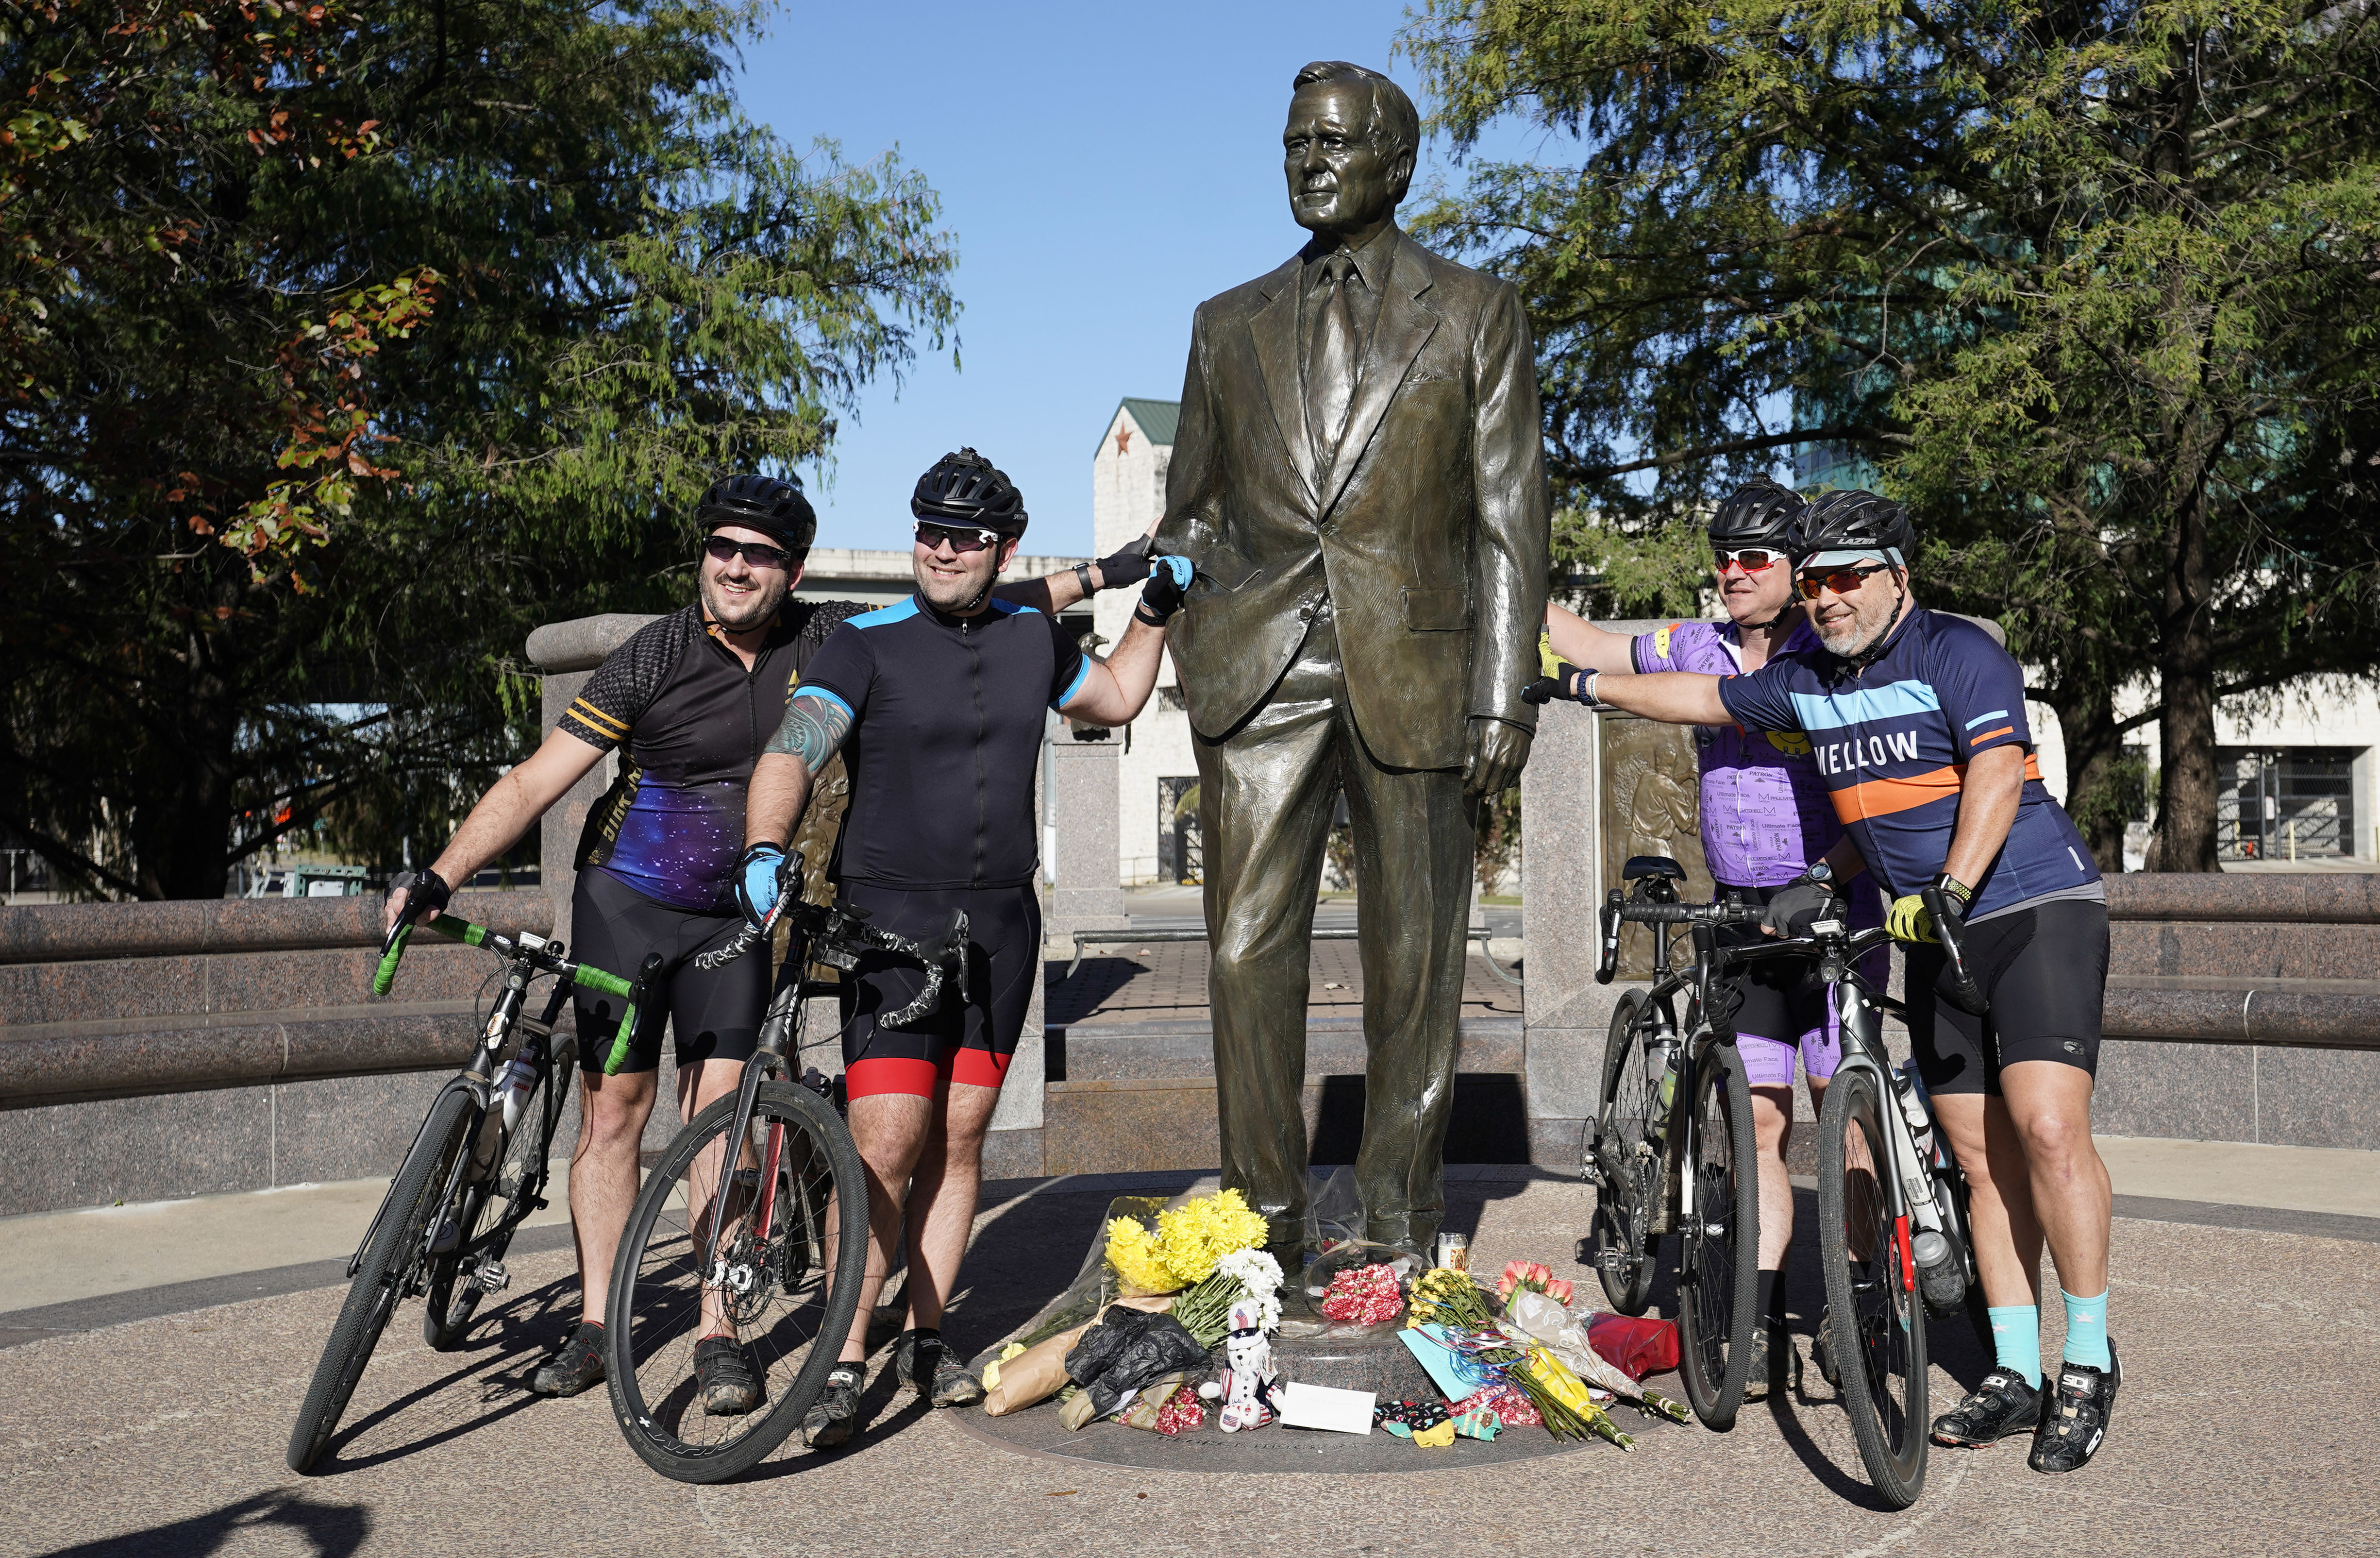 A group of cyclists stop to have a picture taken with a statue of former President George H.W. Bush in downtown Houston, Sunday, Dec. 2. (AP Photo/David J. Phillip)